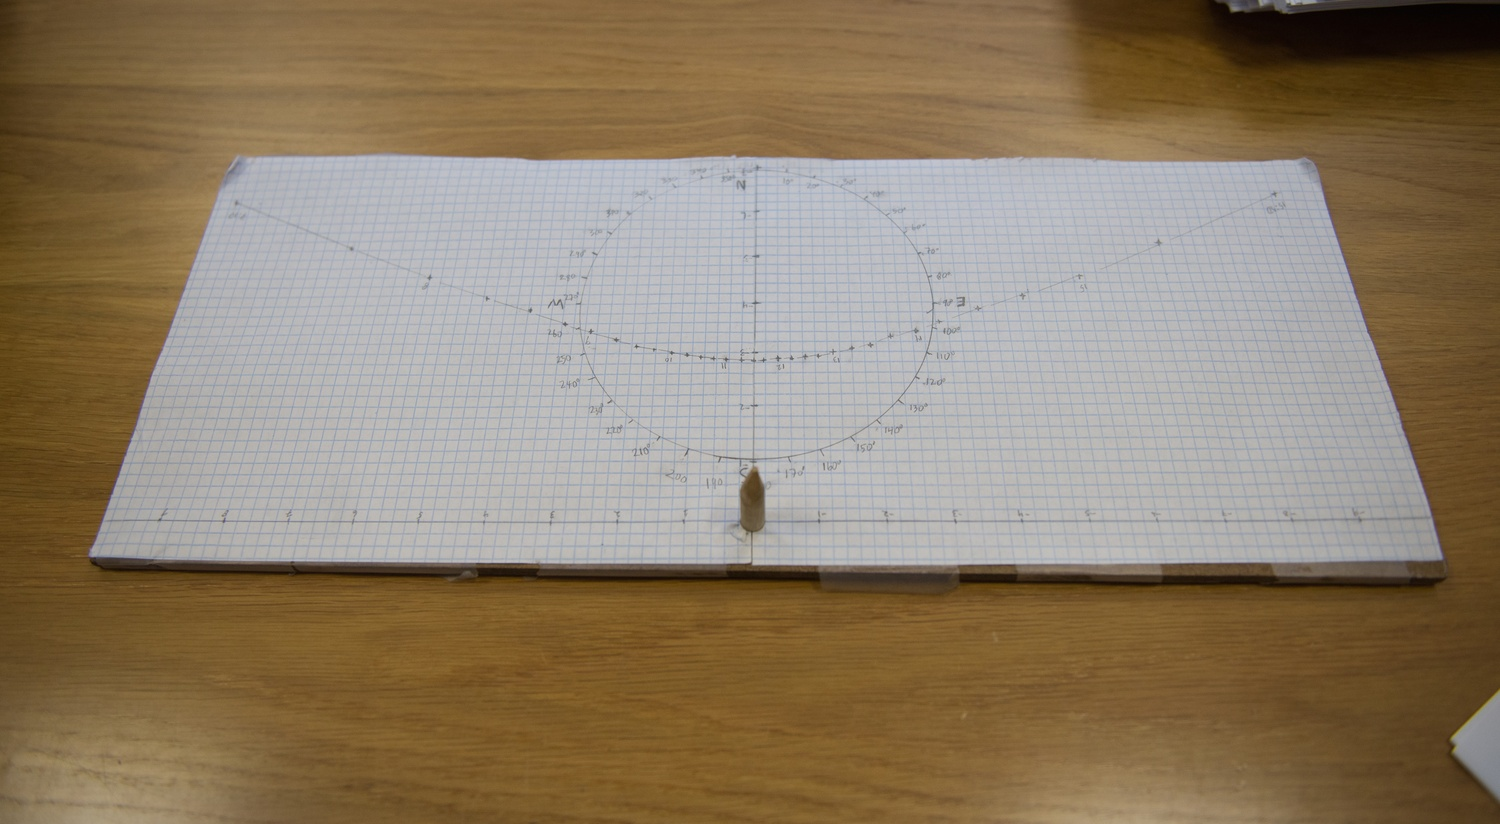 A sun compass, one of many tools used in Primitive Navigation, sits on a desk in John Huth's office.